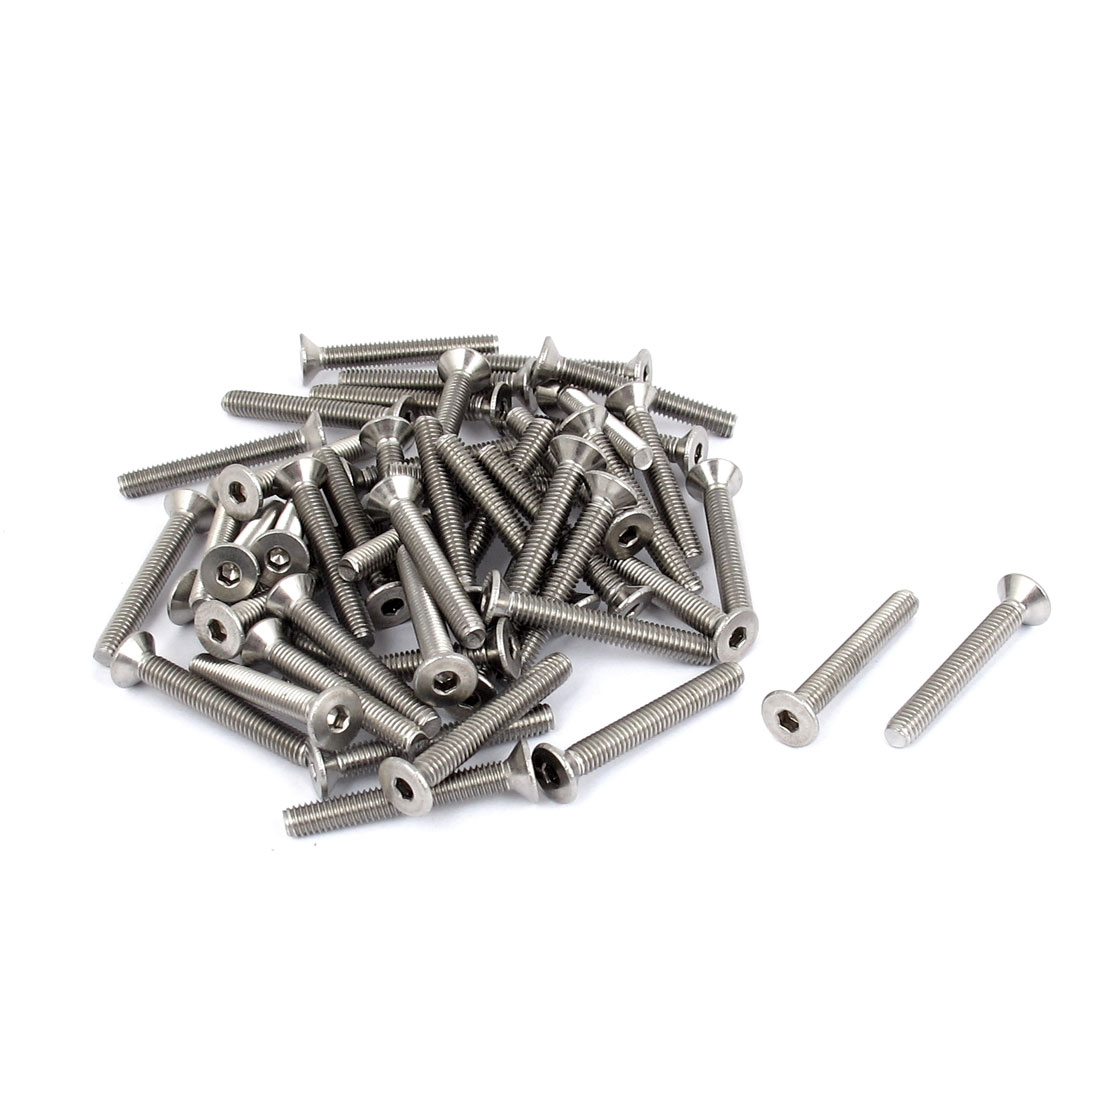 M4 x 30mm Metric 304 Stainless Steel Hex Socket Countersunk Flat Head Screw Bolts 50pcs